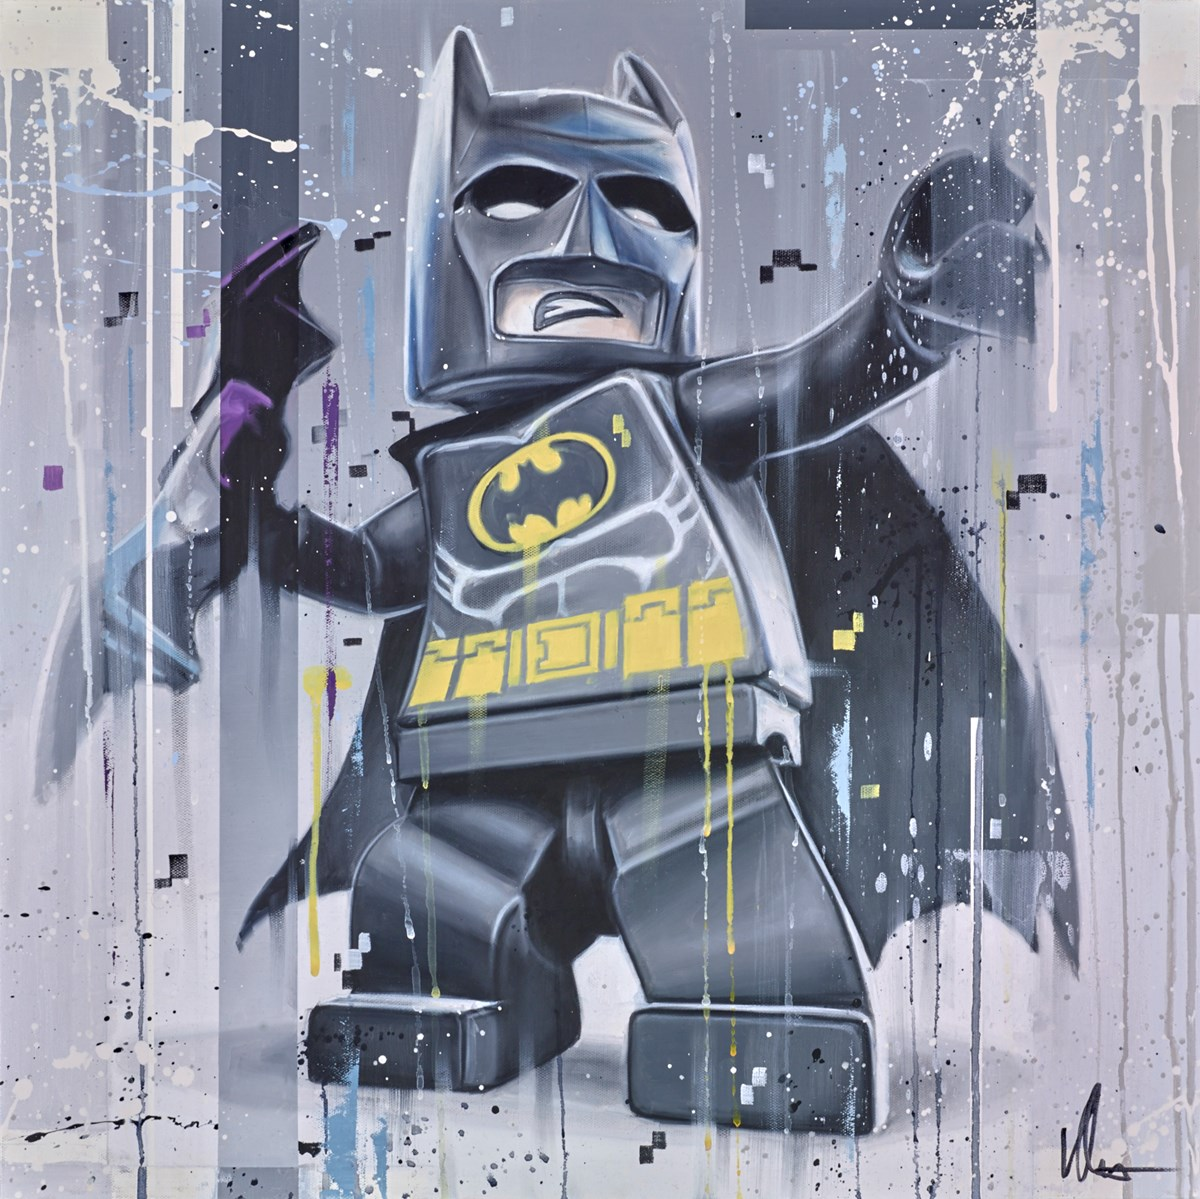 Everything is Awesome by kris hardy -  sized 24x24 inches. Available from Whitewall Galleries